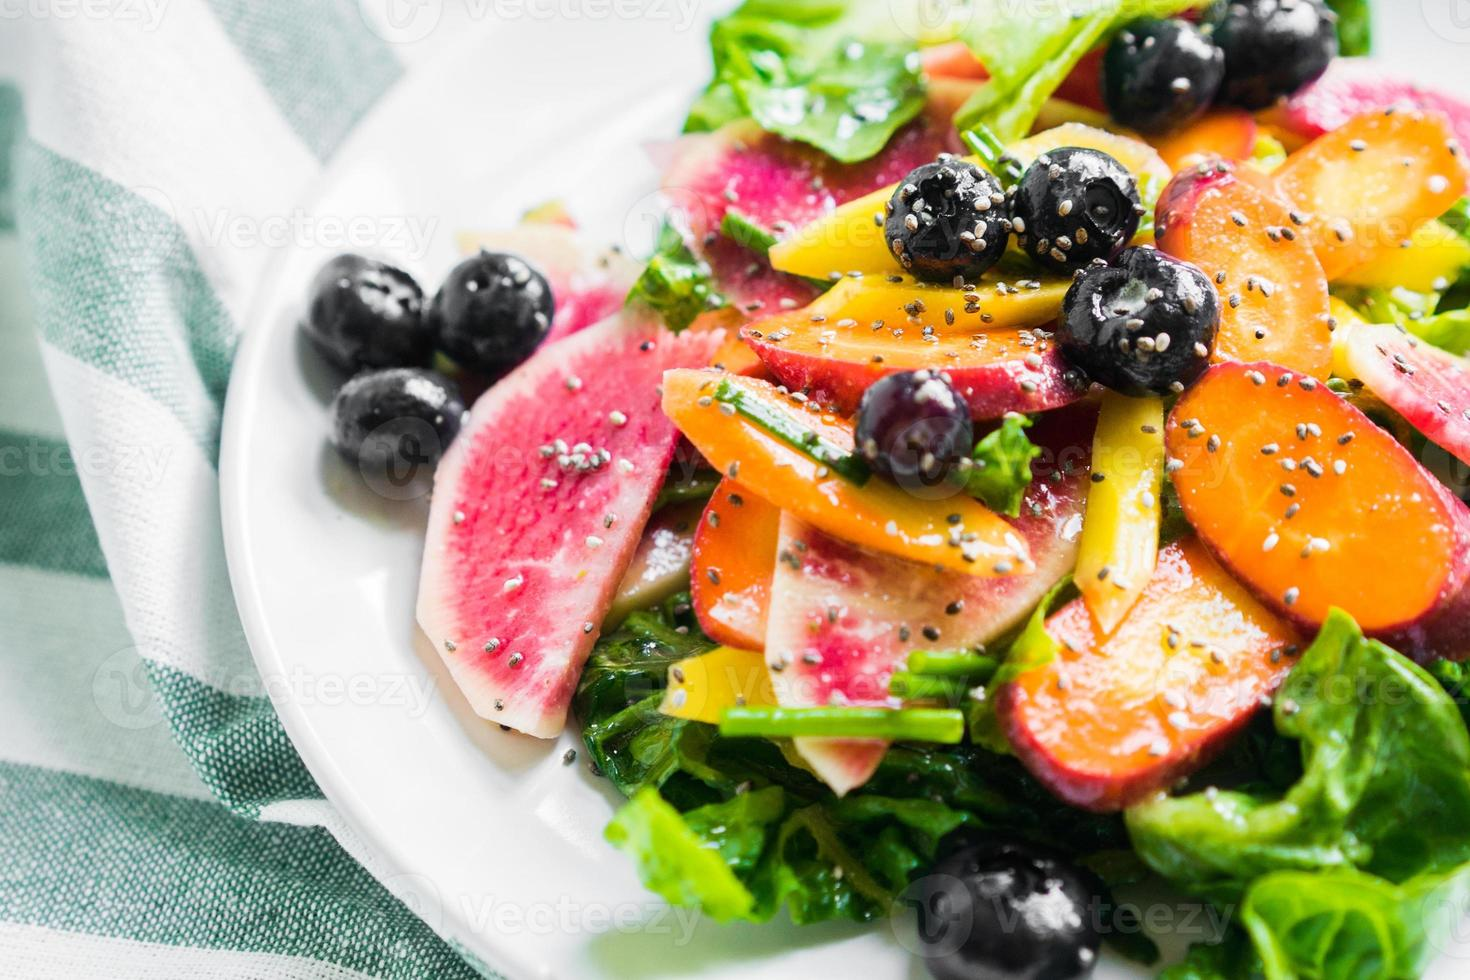 Summer salad with vegetables and berries photo